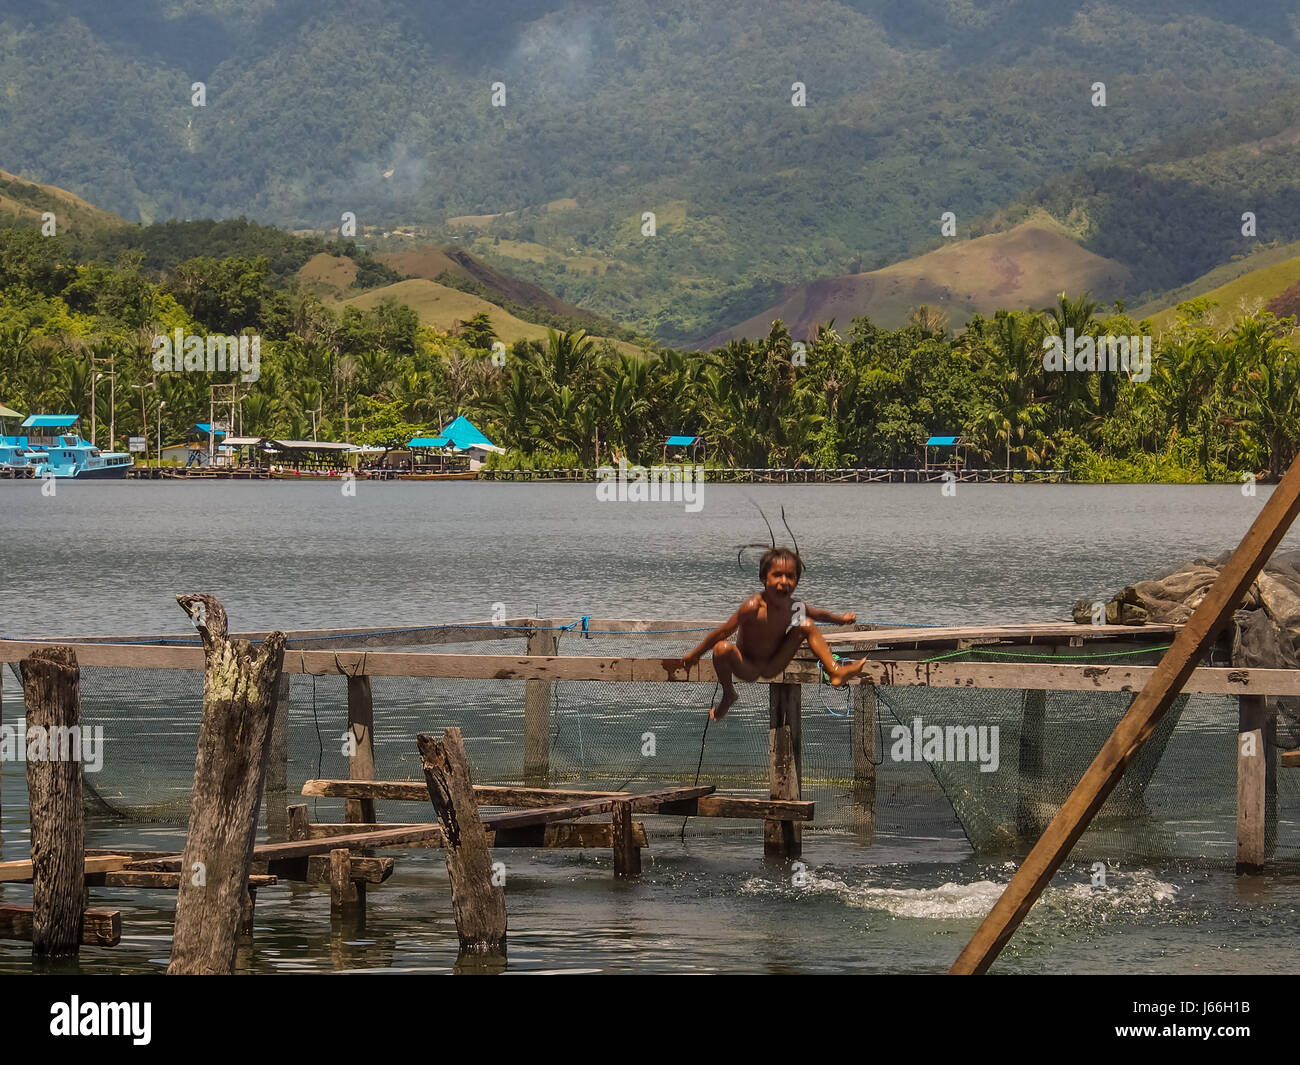 sentani indonesien 24 januar 2015 kinder spielen im wasser auf einem see sentani stockfoto. Black Bedroom Furniture Sets. Home Design Ideas